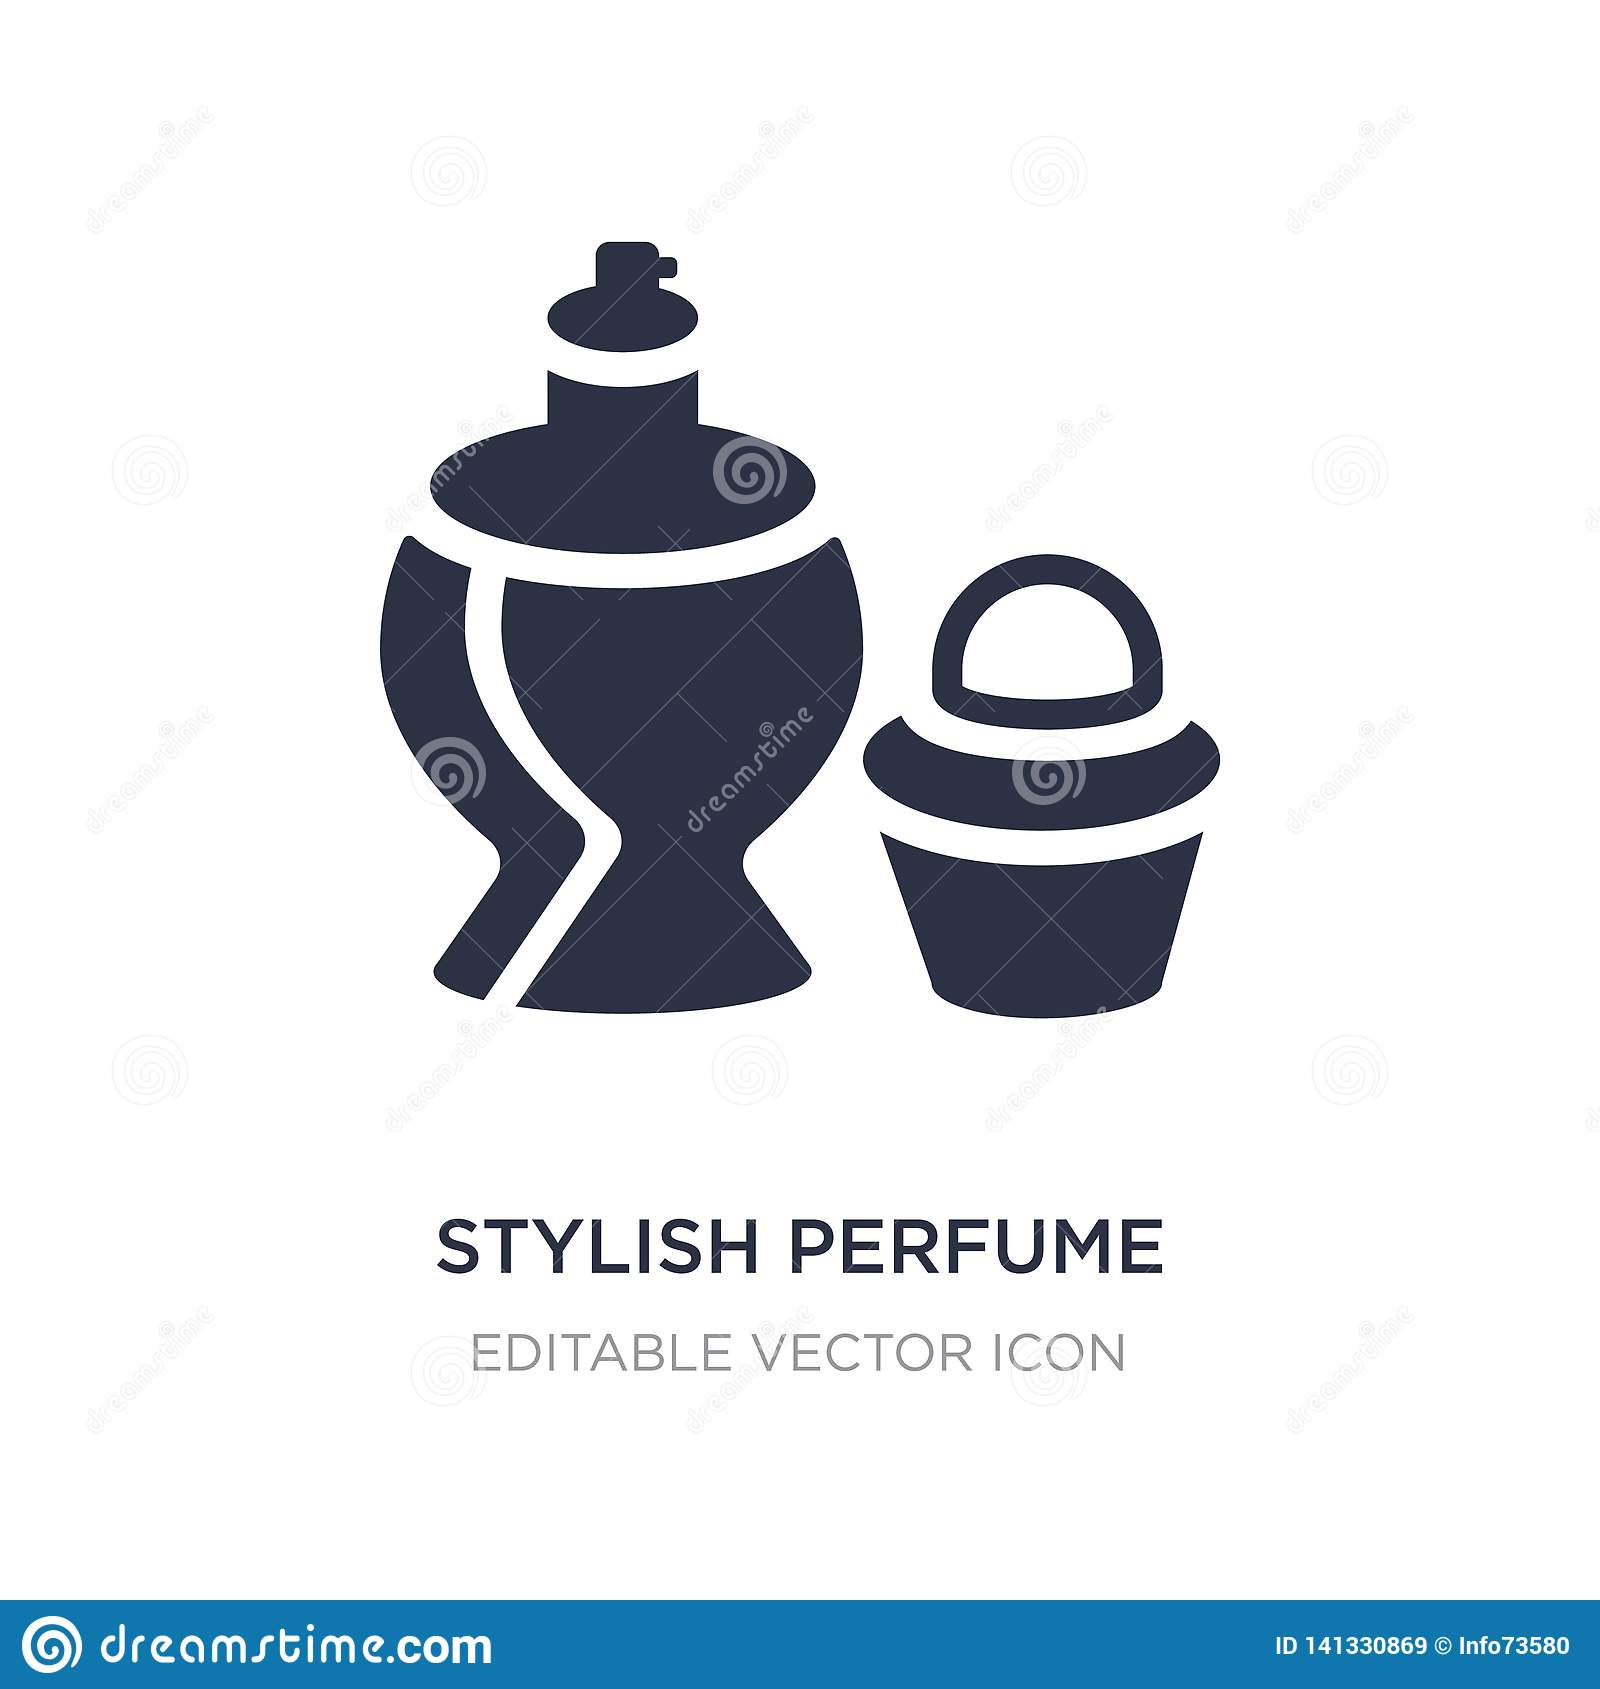 Stylish Perfume Bottle Icon On White Background Simple Element Illustration From Shapes Concept Stock Vector Illustration Of Drawing Woman 141330869,Virtual Architect Ultimate Home Design With Landscaping And Decks 70